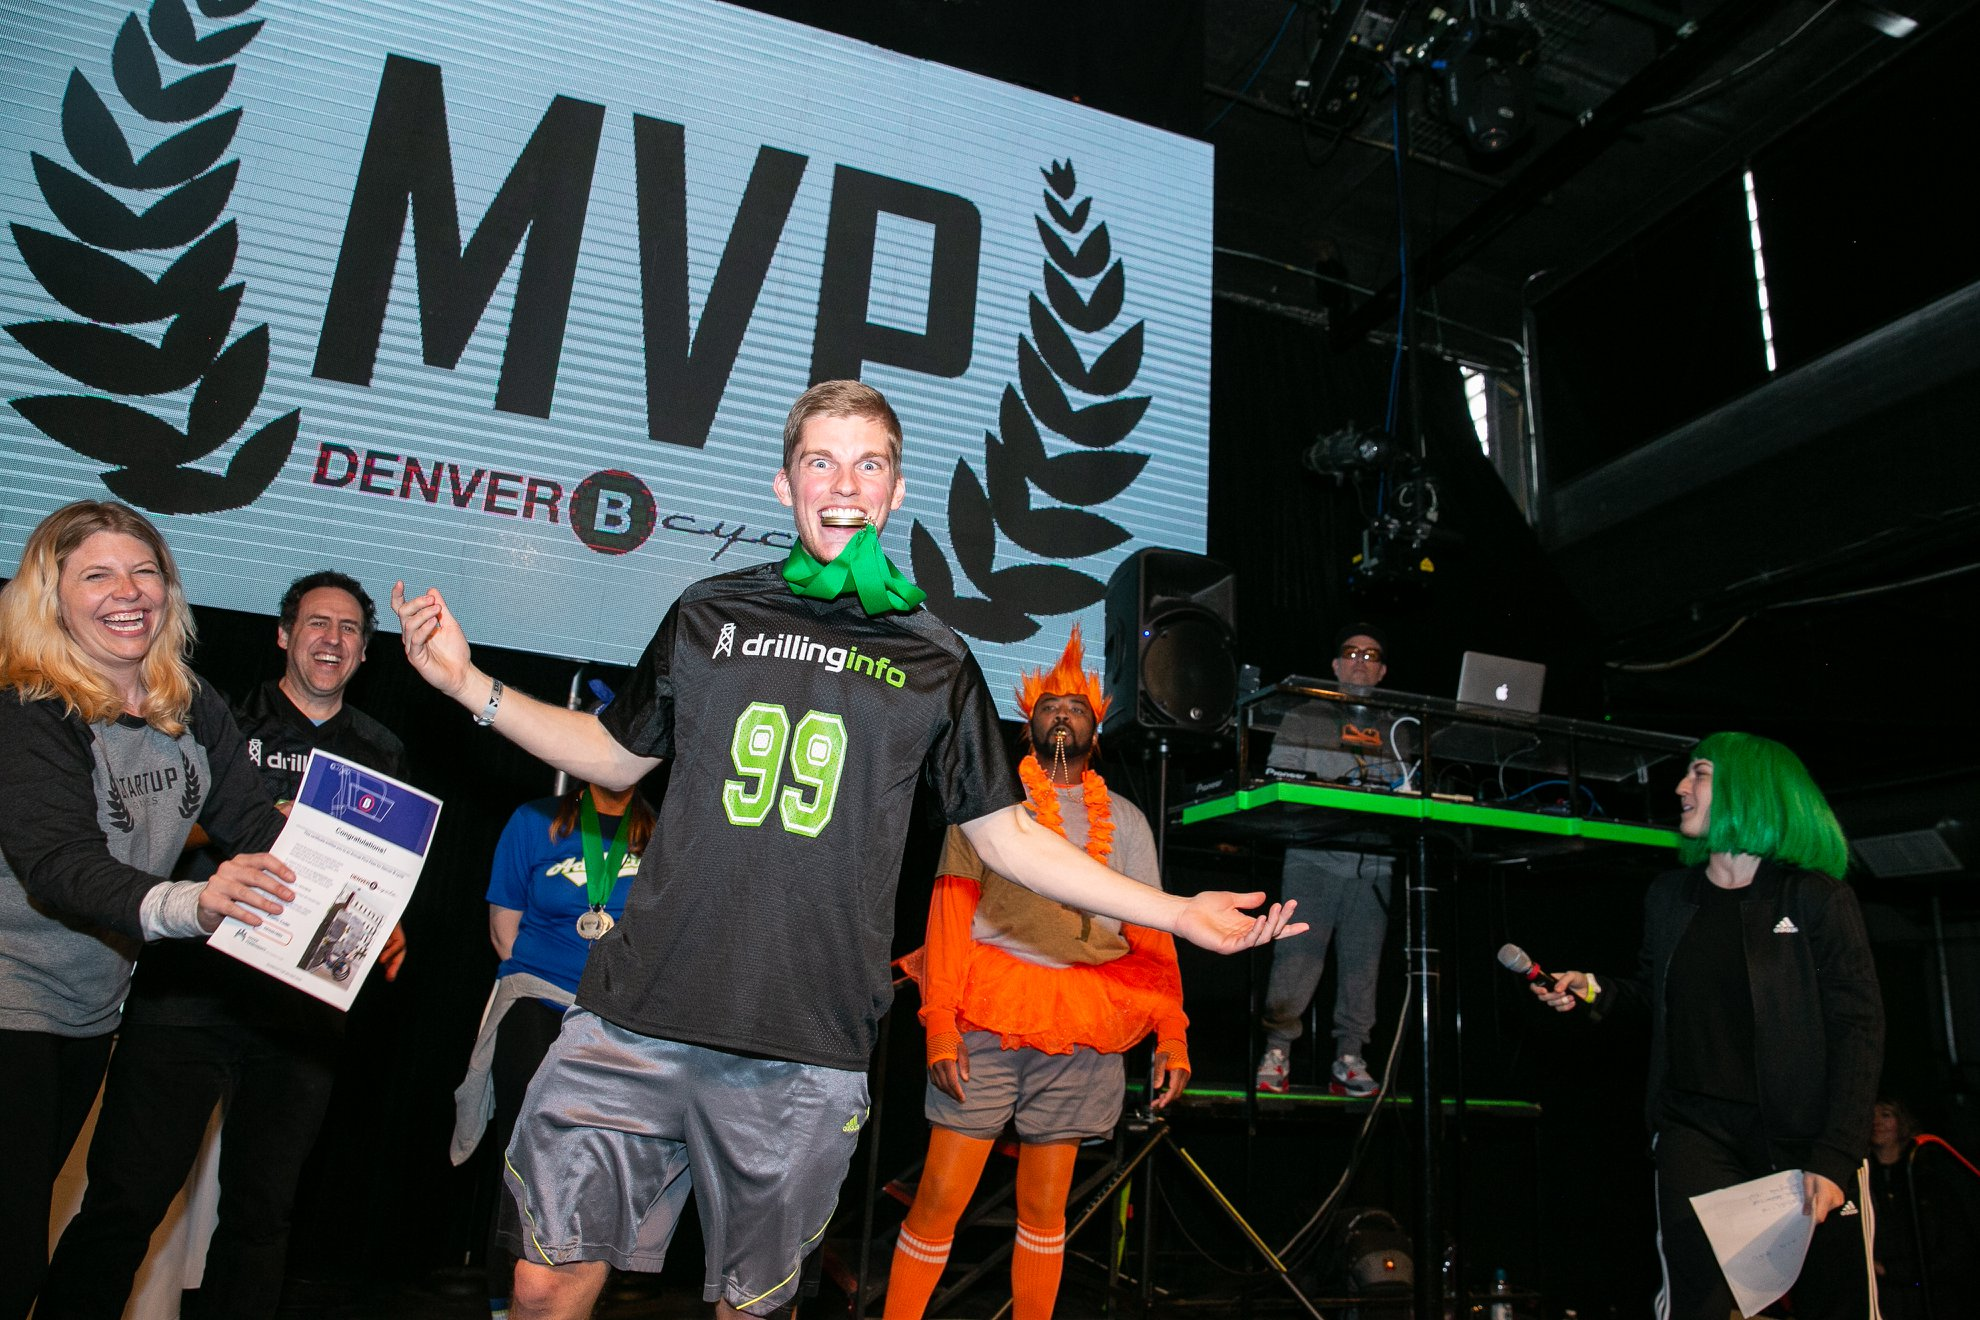 Excited to crown our first Startup Games MVP